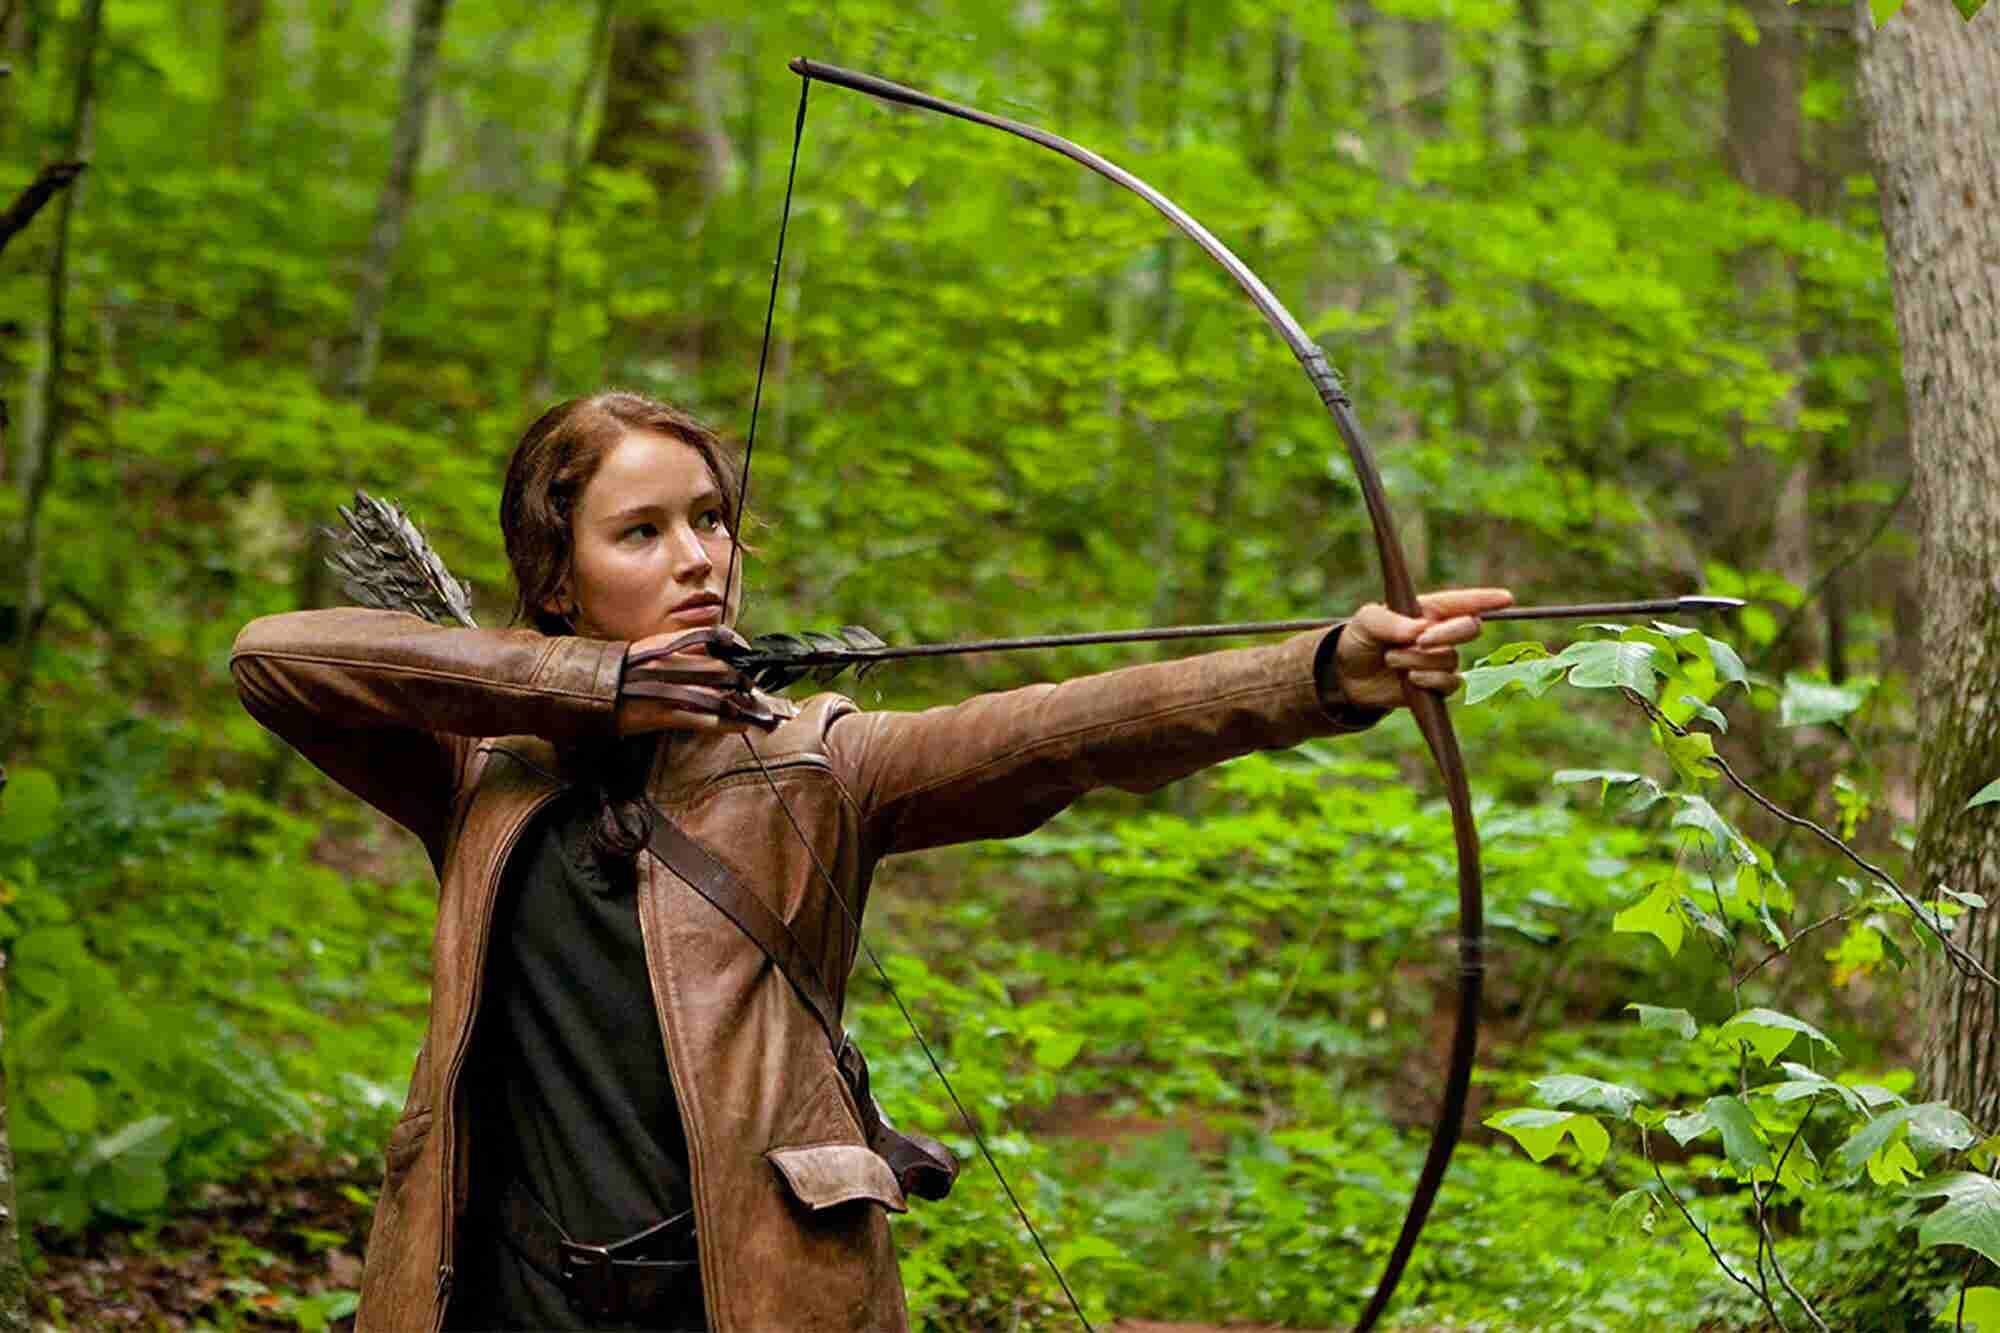 Take These Steps To Make Sure Your Career Doesn't Turn into the Hunger Games